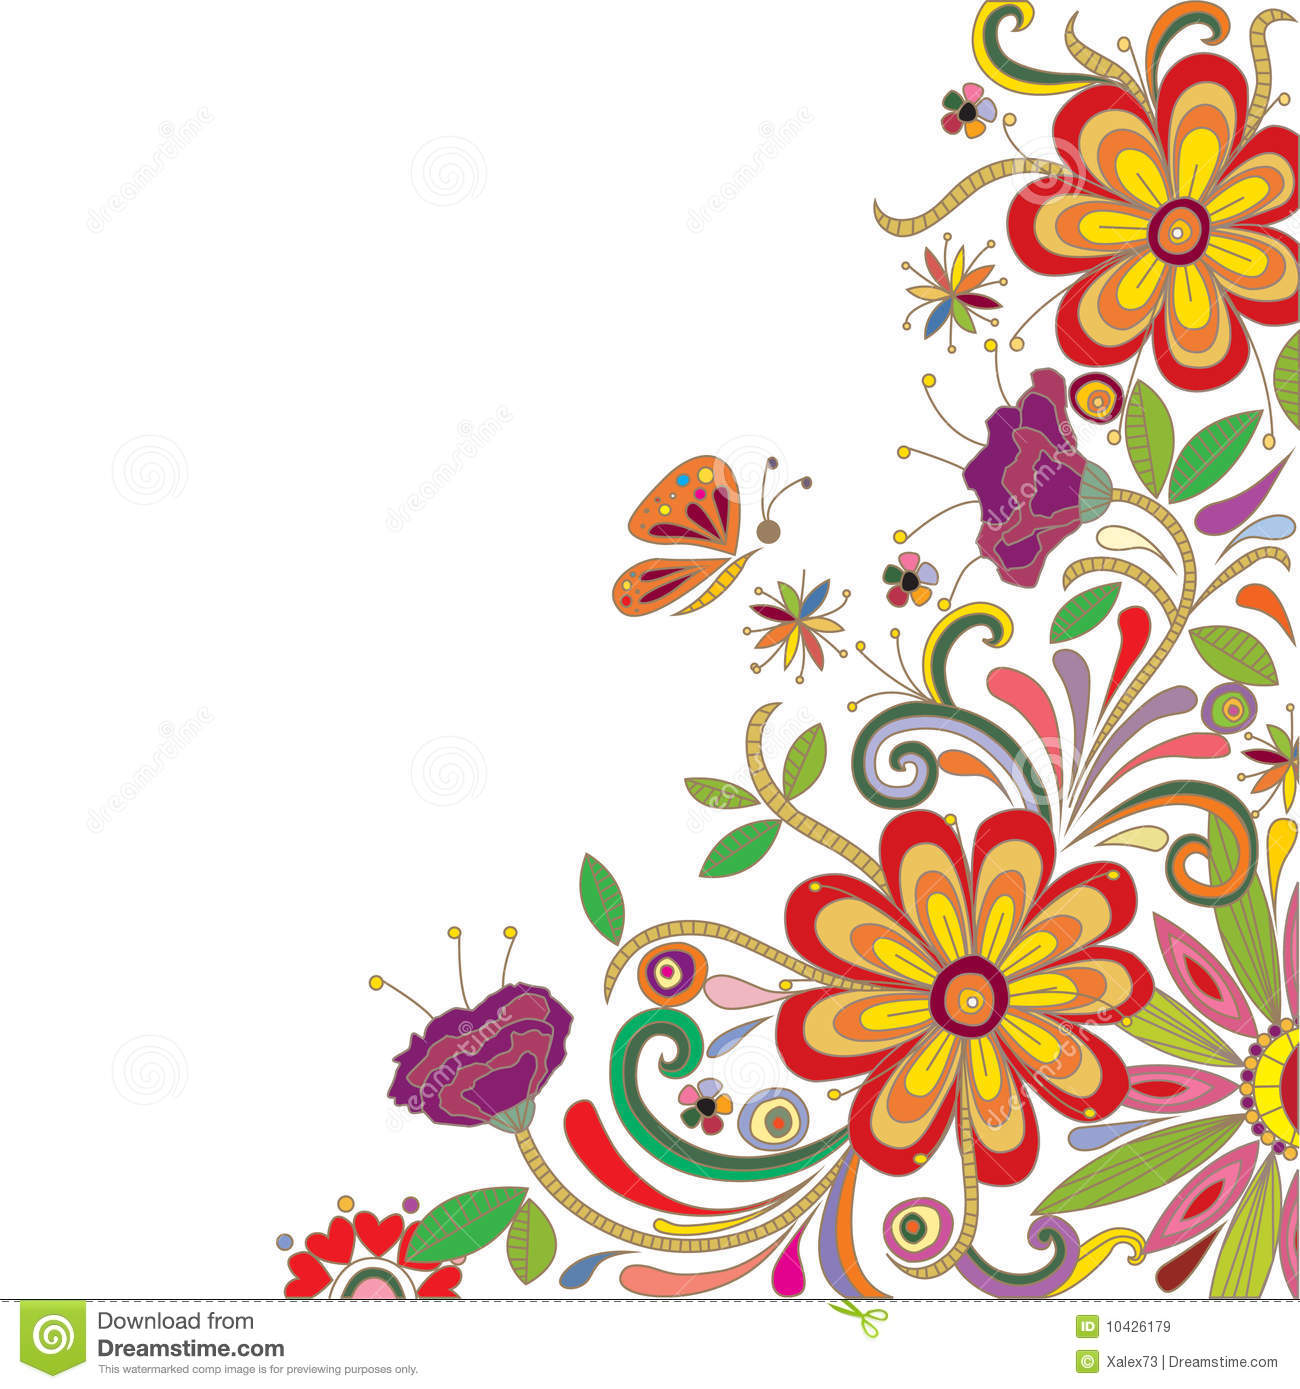 Colorful Abstract Floral Design